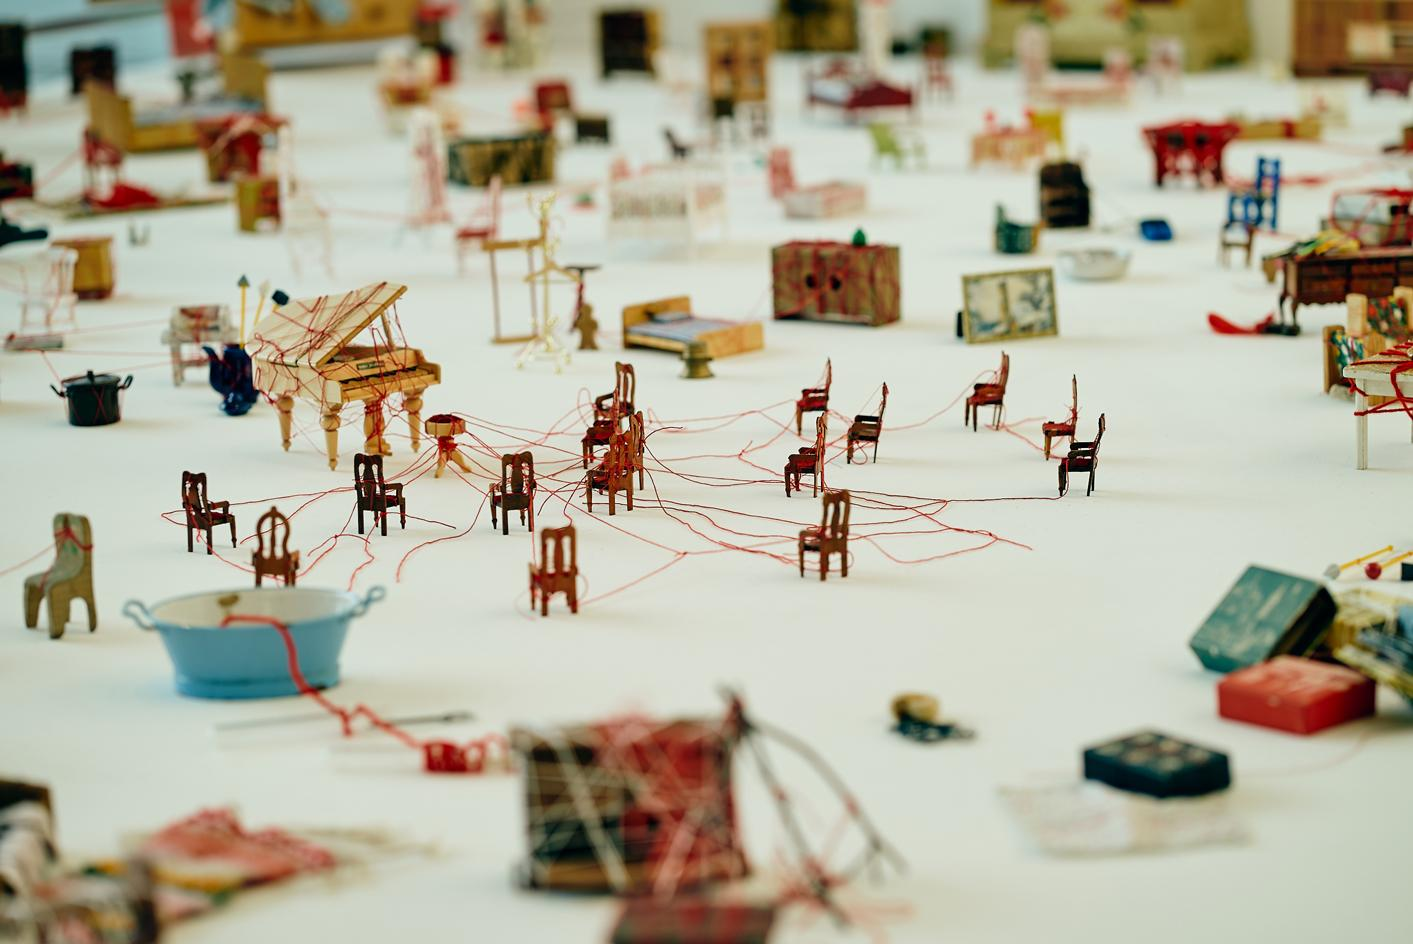 Connecting Small Memories, a mixed media installation at the Busan Museum of Art